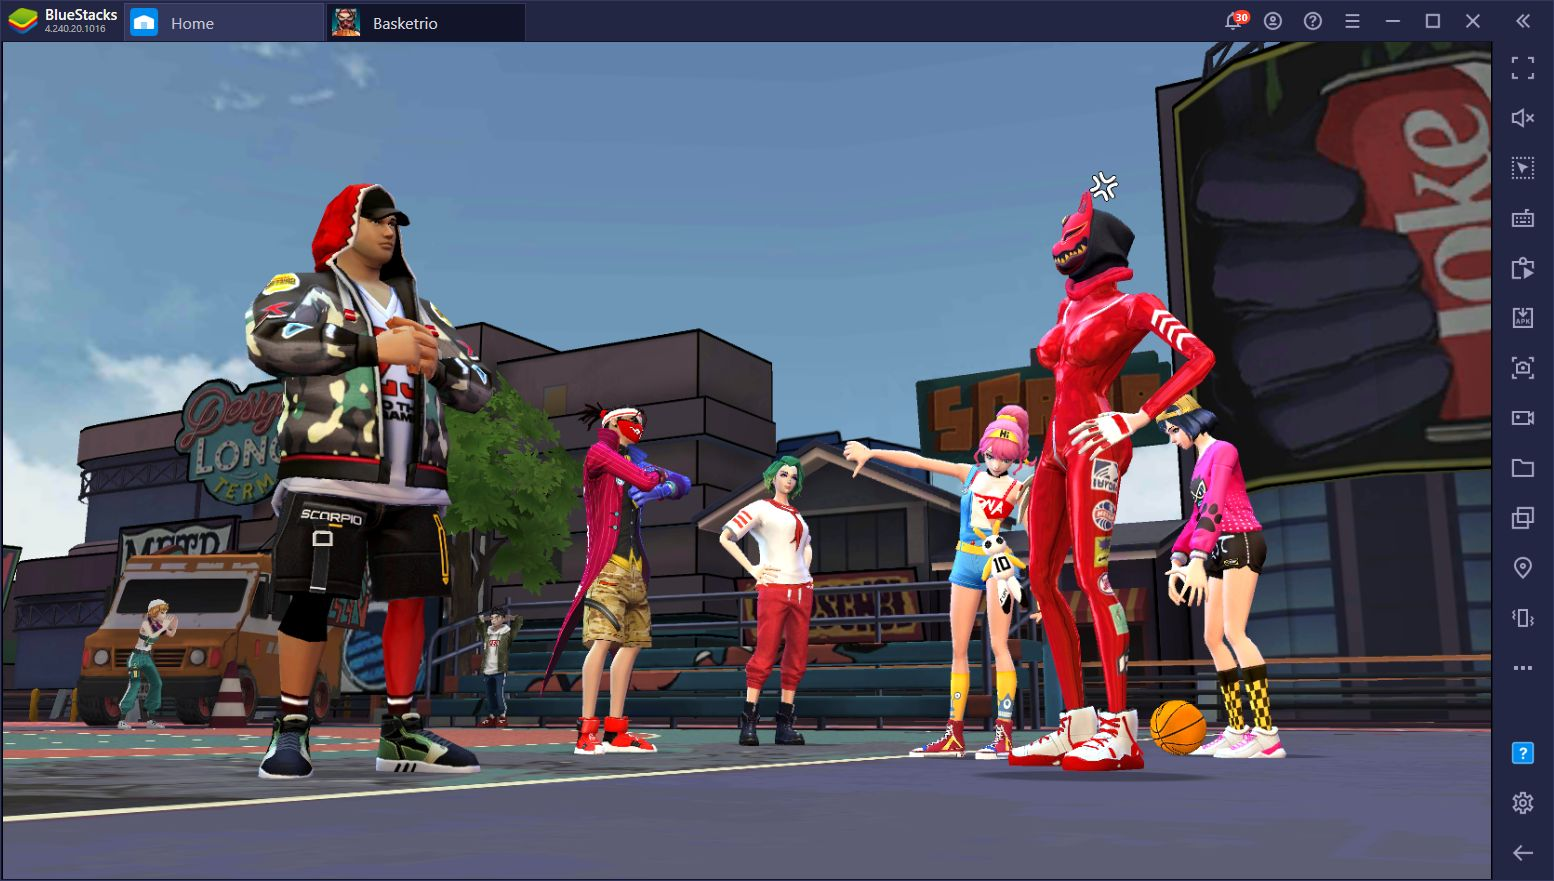 Basketrio on PC – The Best Beginner Tips and Tricks for this New Mobile Basketball Game